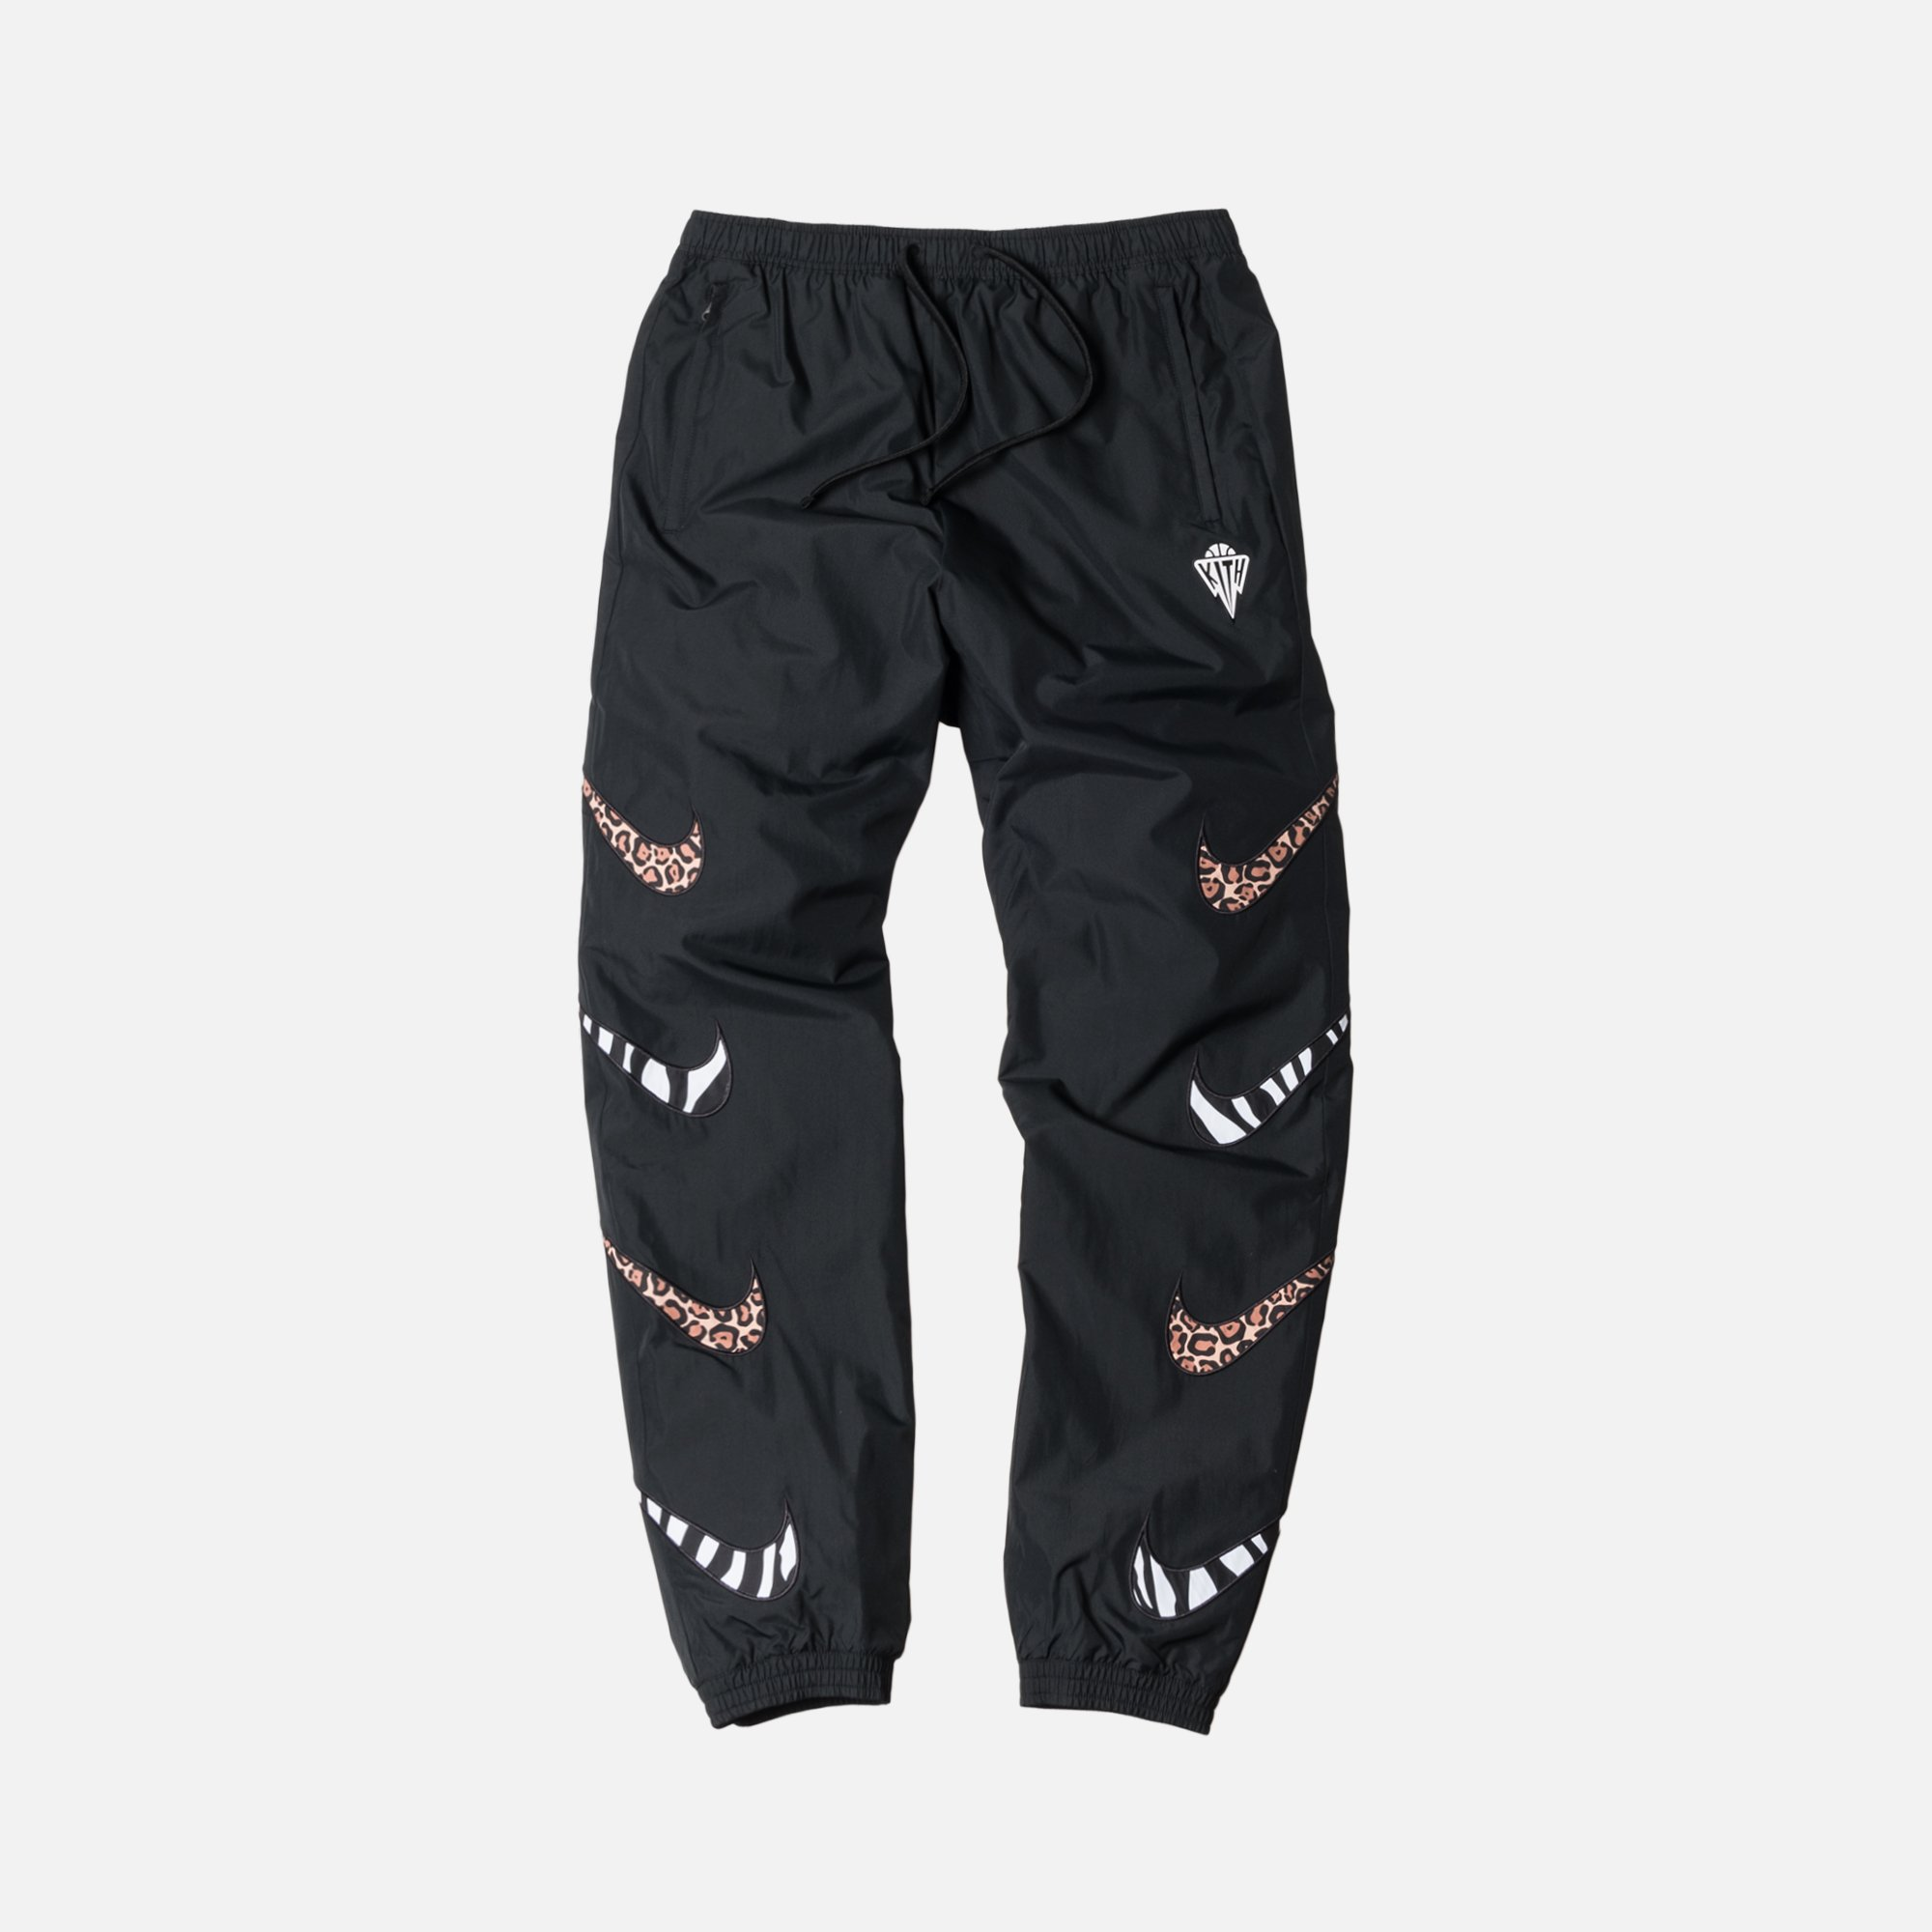 9bf4b6af3c71 Nike Kith X Nike Max Animal Pants Size 30 - Sweatpants   Joggers for Sale -  Grailed